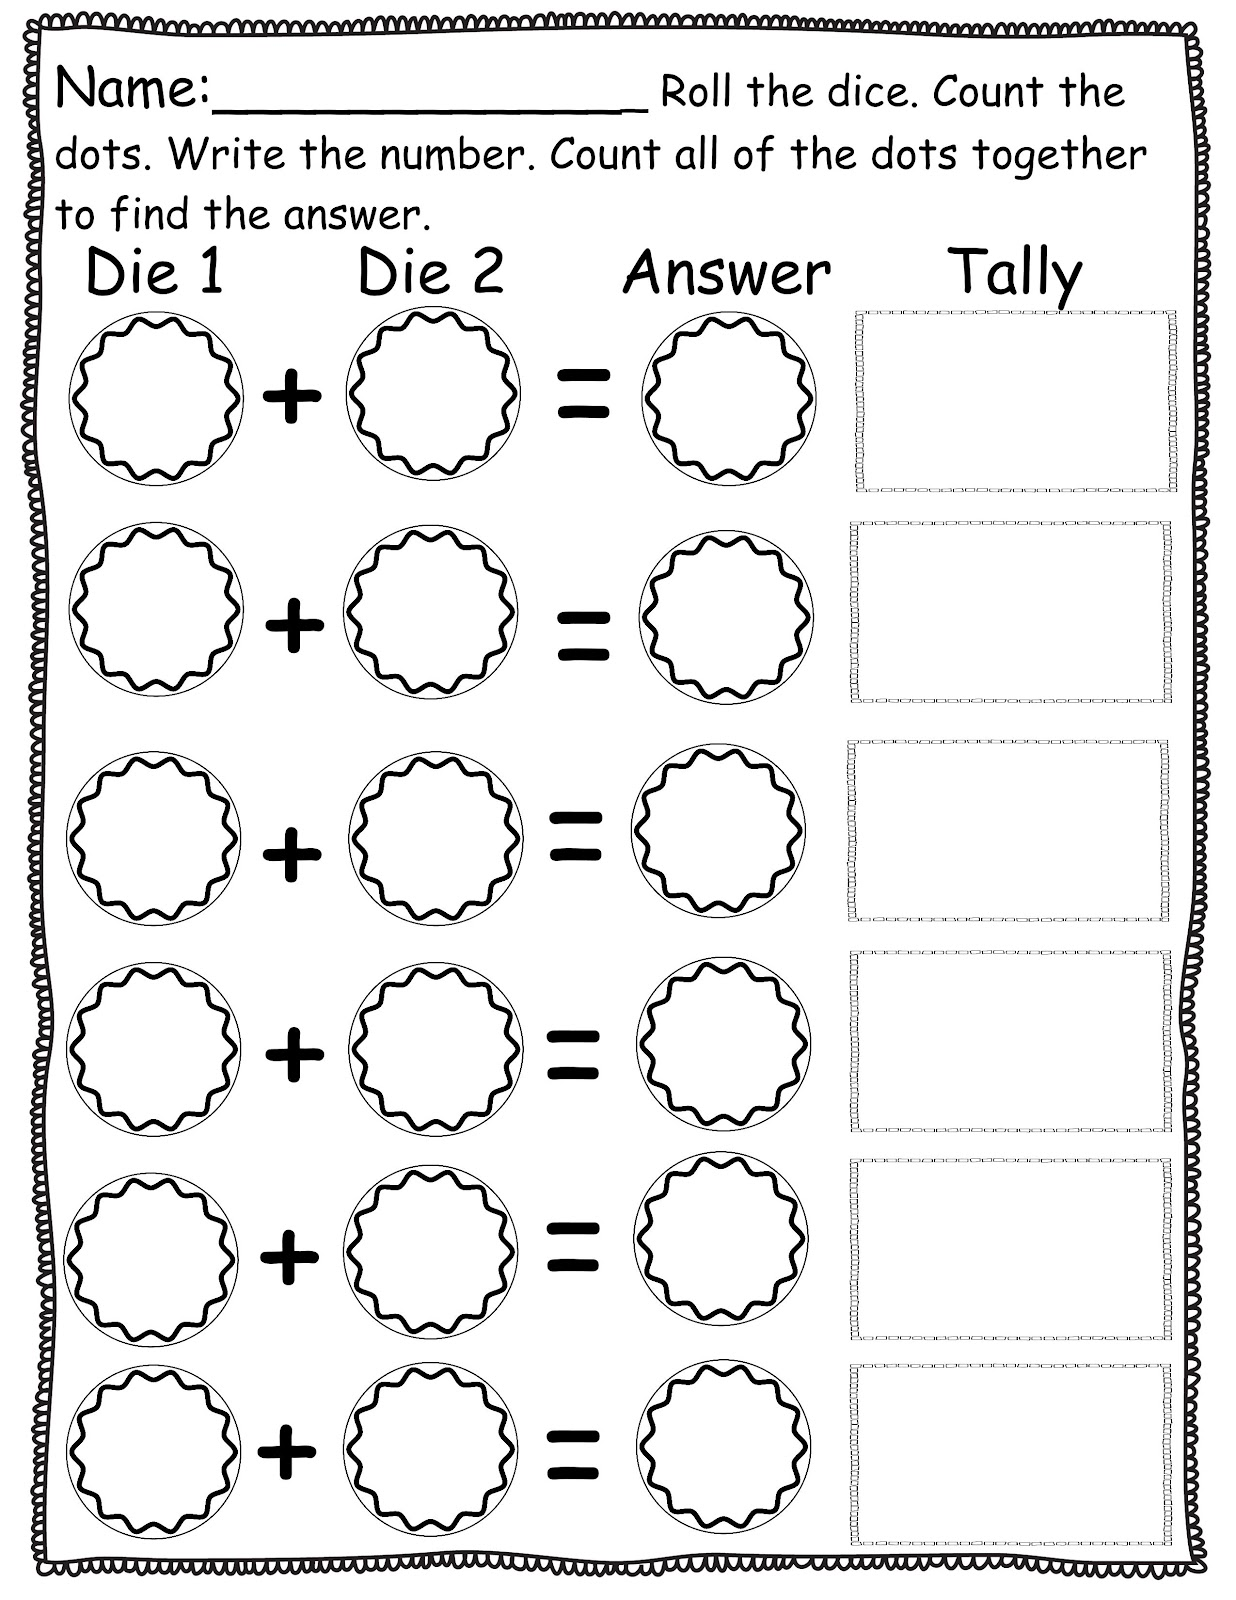 Free Printable Pre K Worksheets : Addition worksheets for pre k search results calendar